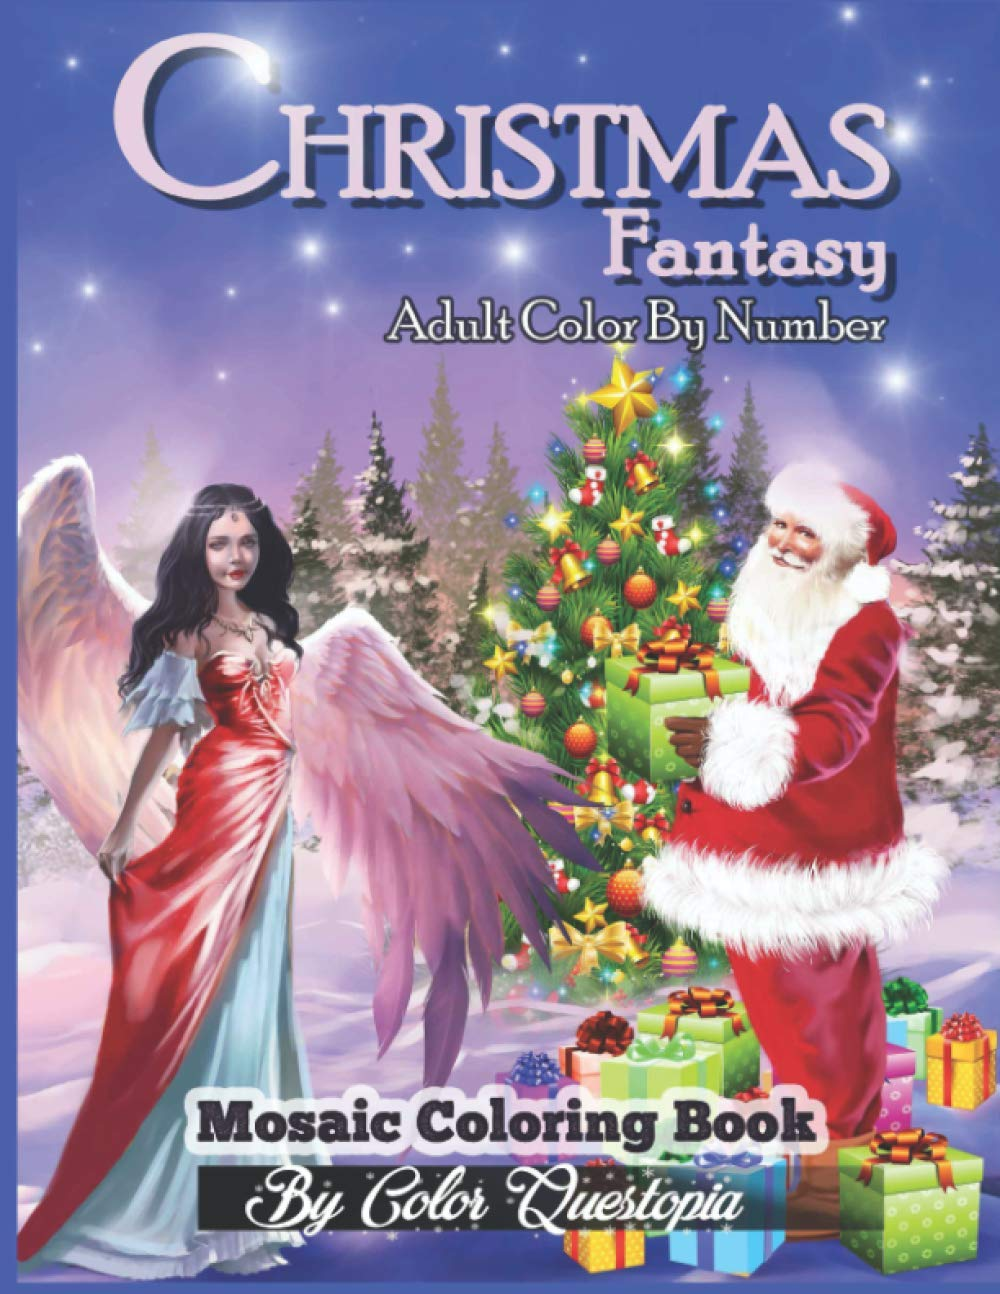 Christmas Fantasy - Adult Color By Number Mosaic Coloring Book: Magical Christmas Coloring Book For Adults and Teens (Fun Adult Color By Number Coloring) pdf epub